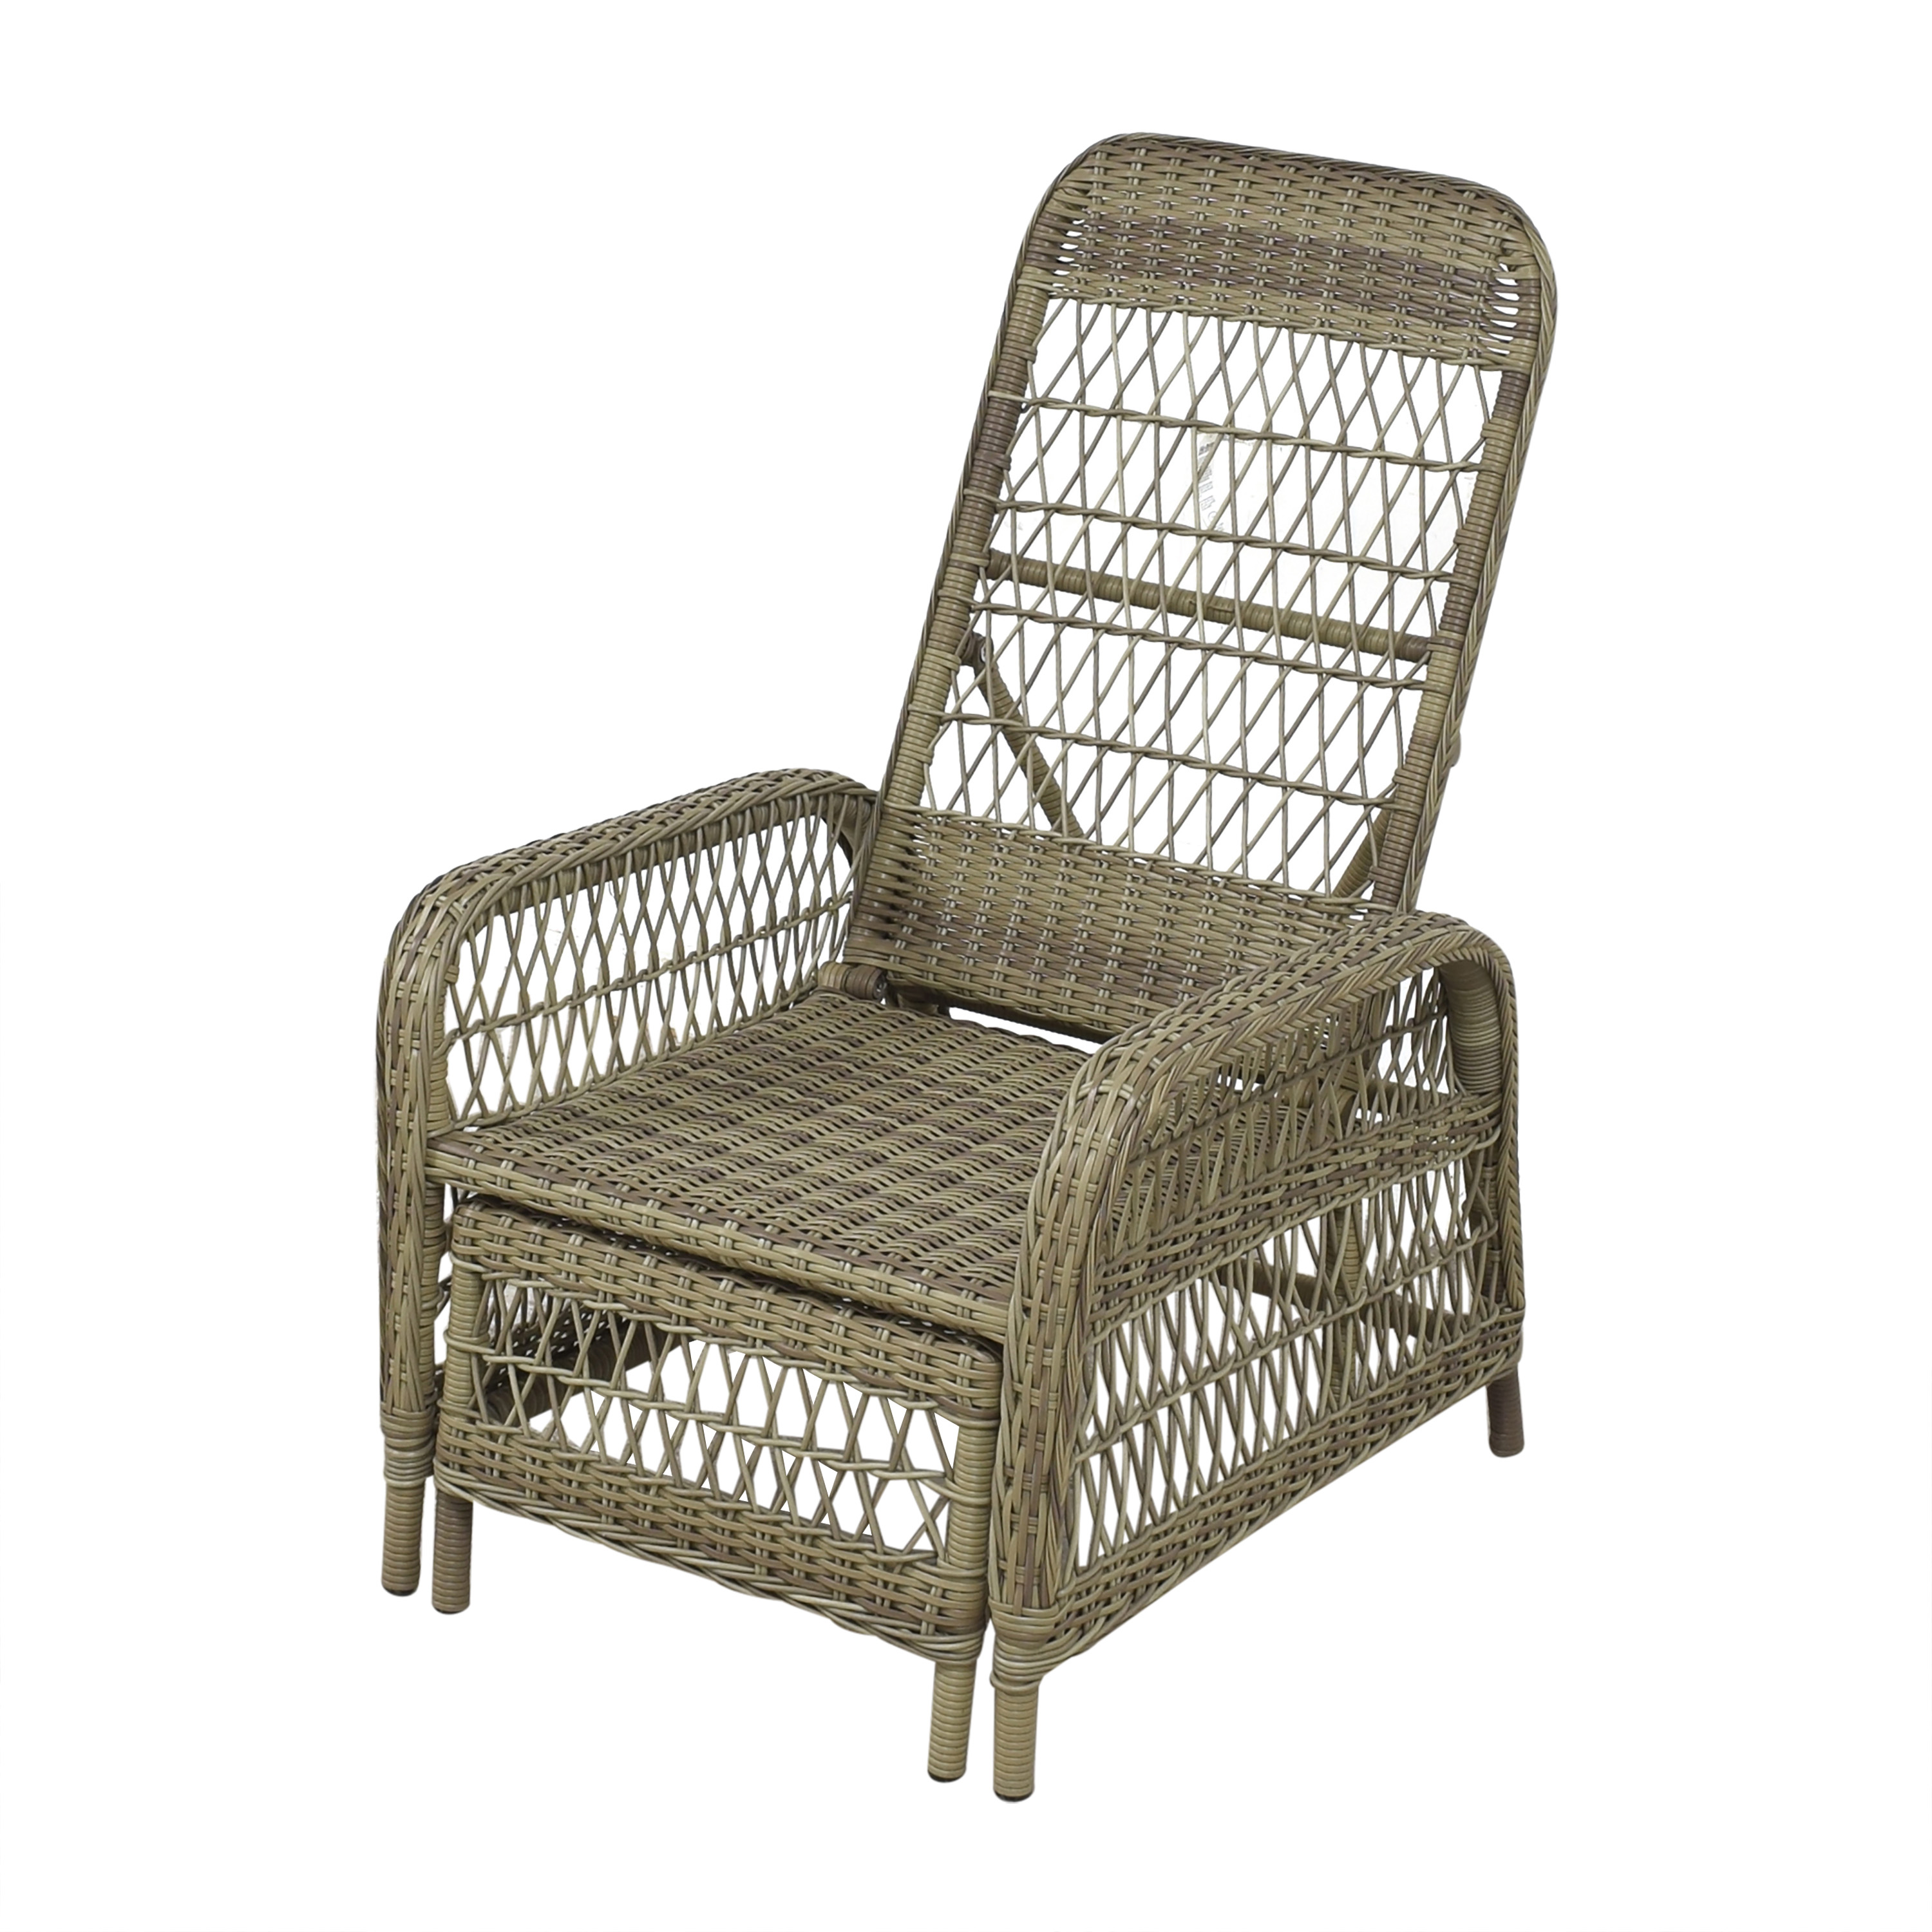 Sika Design Reclining Chair with Extendable Ottoman Sika Design